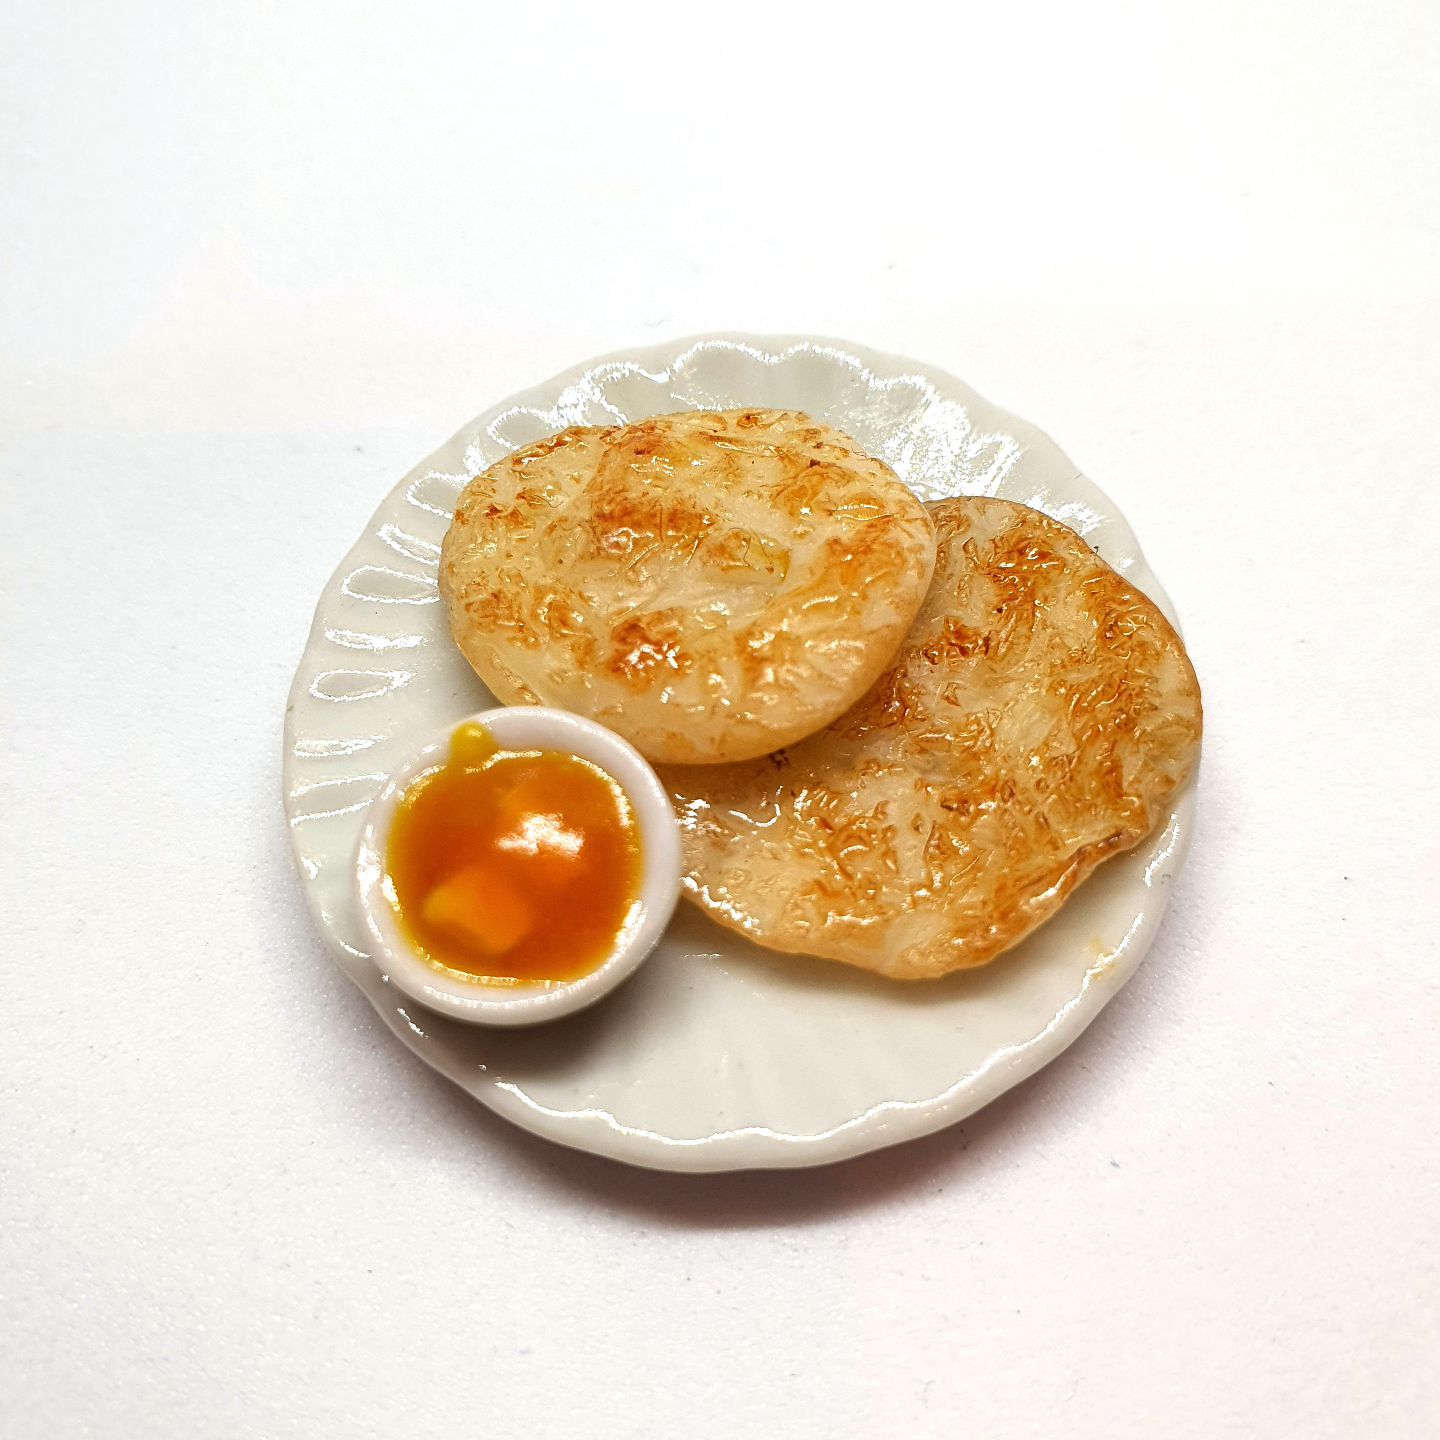 Handmade Miniature: Roti Prata by Madam Ang Miniature World